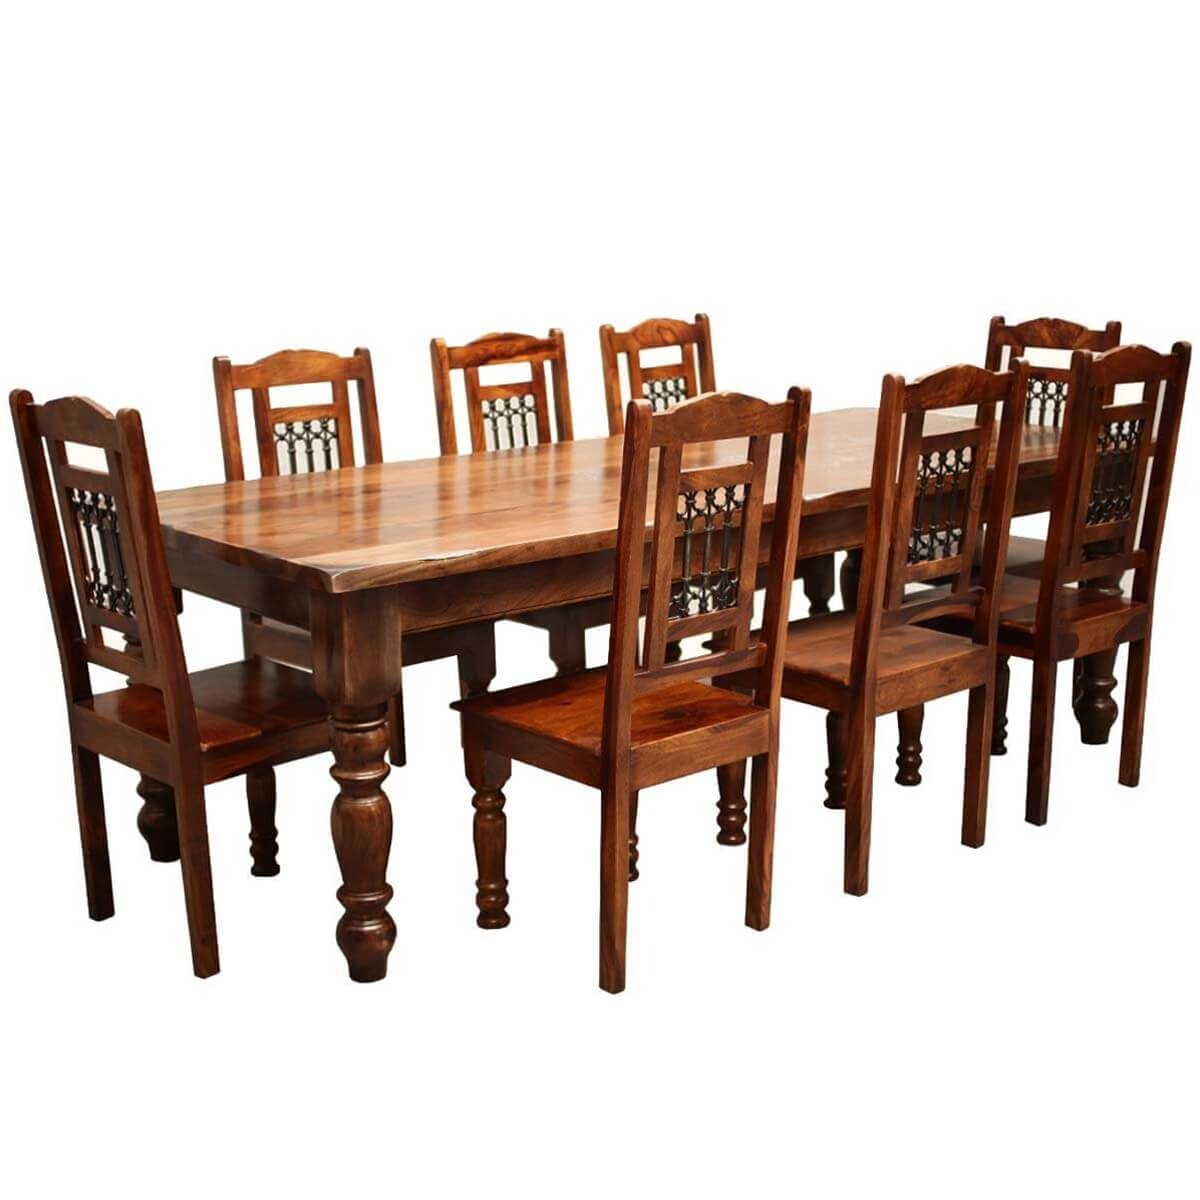 By Room Dining Room Dining Tables Early American Rustic Solid Wood ...